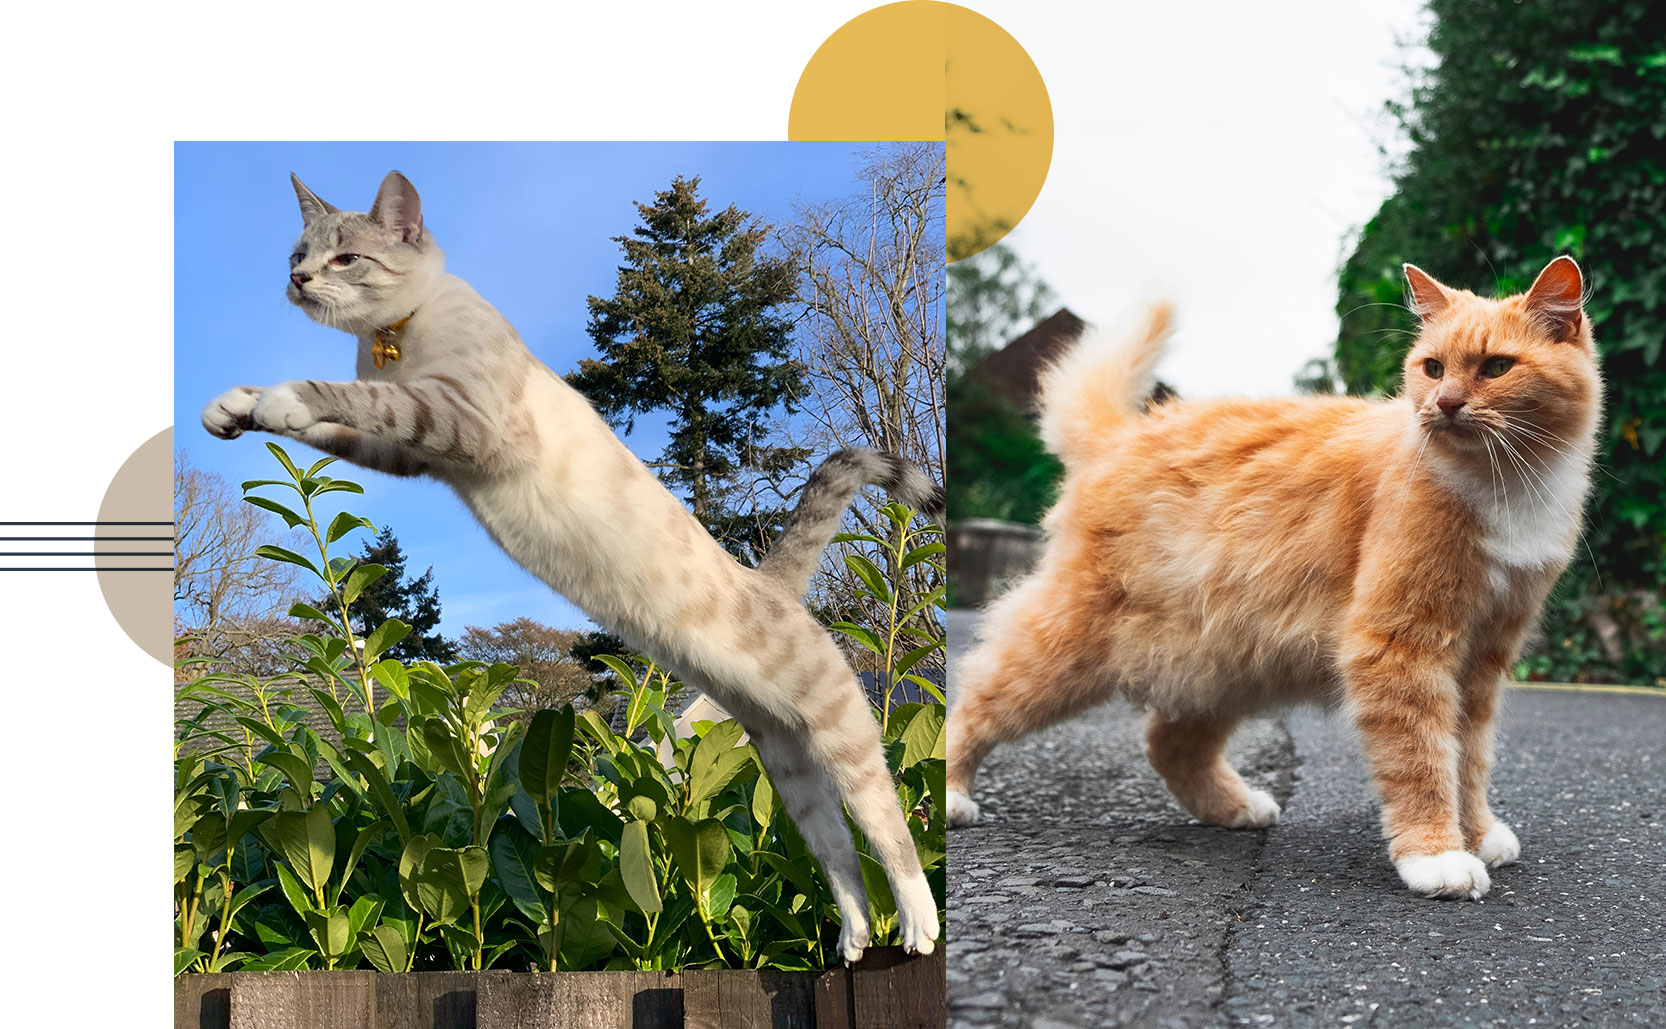 cat jumping fully stretched out, another cat standing with its primordial pouch hanging down